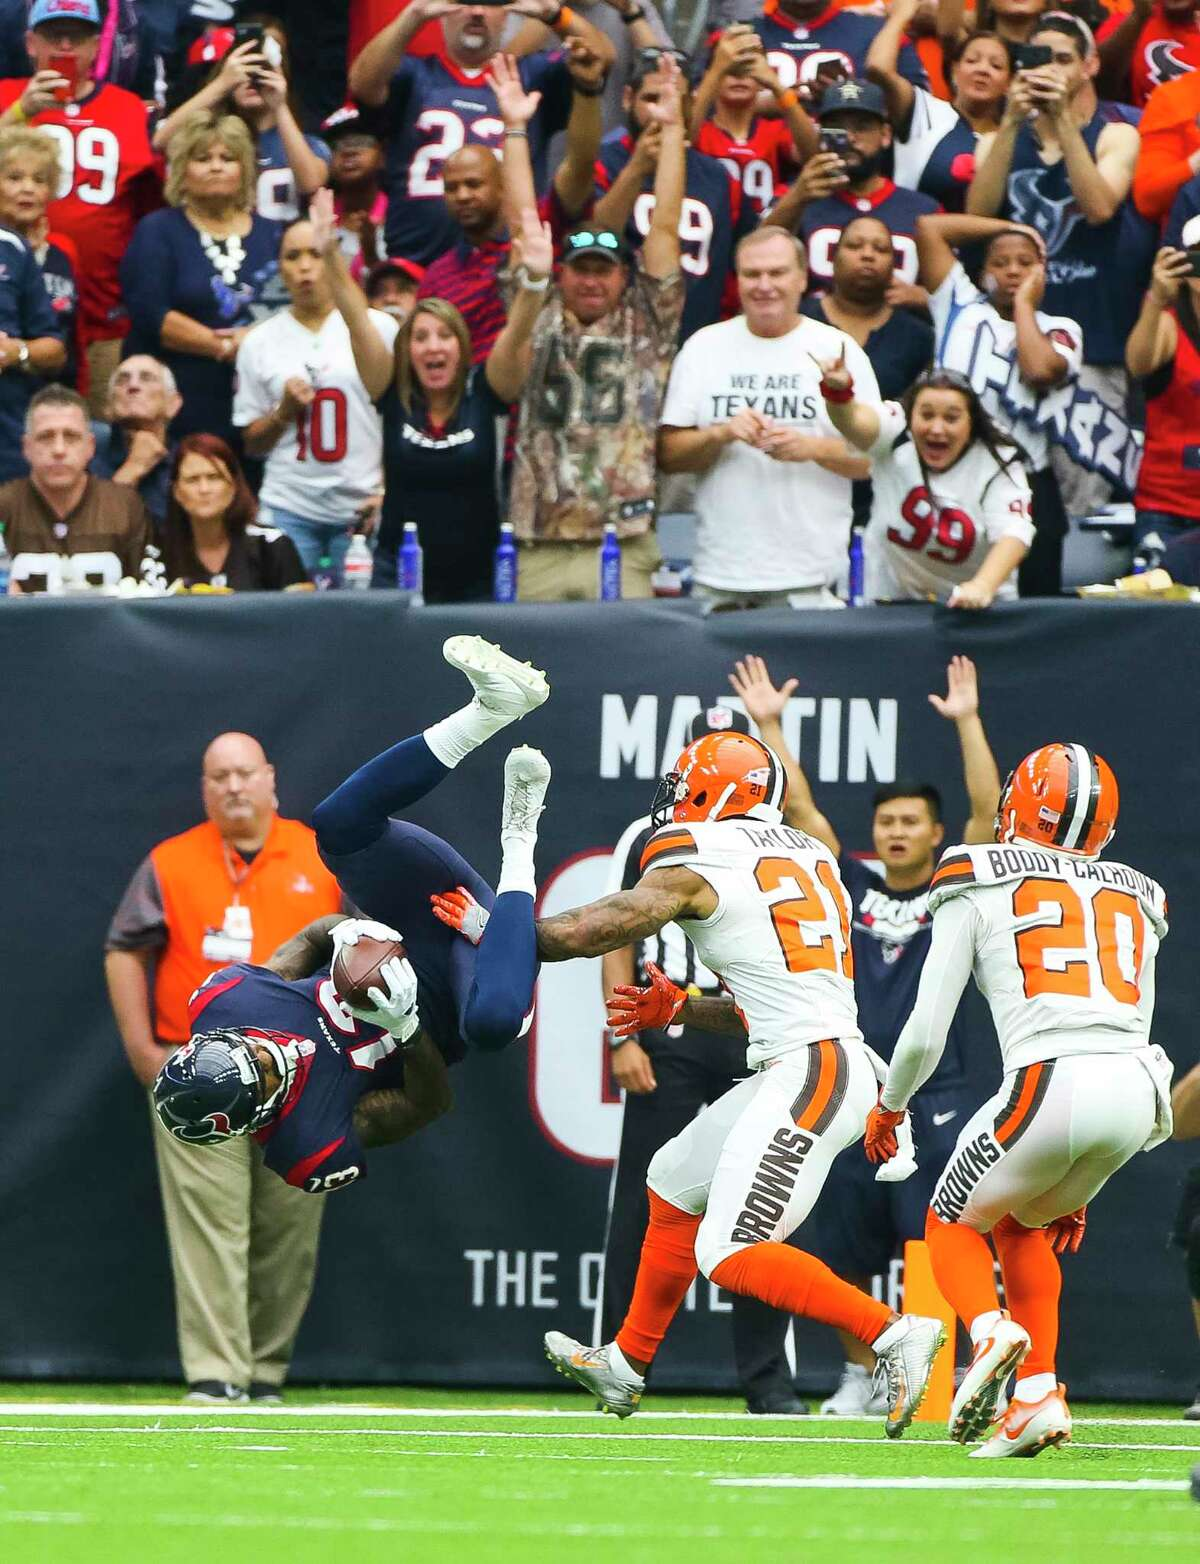 Houston Texans wide receiver Braxton Miller (13) flips into the end zone on a one-yard touchdown reception during the first half of an NFL football game at NRG Stadium on Sunday, Oct. 15, 2017, in Houston.